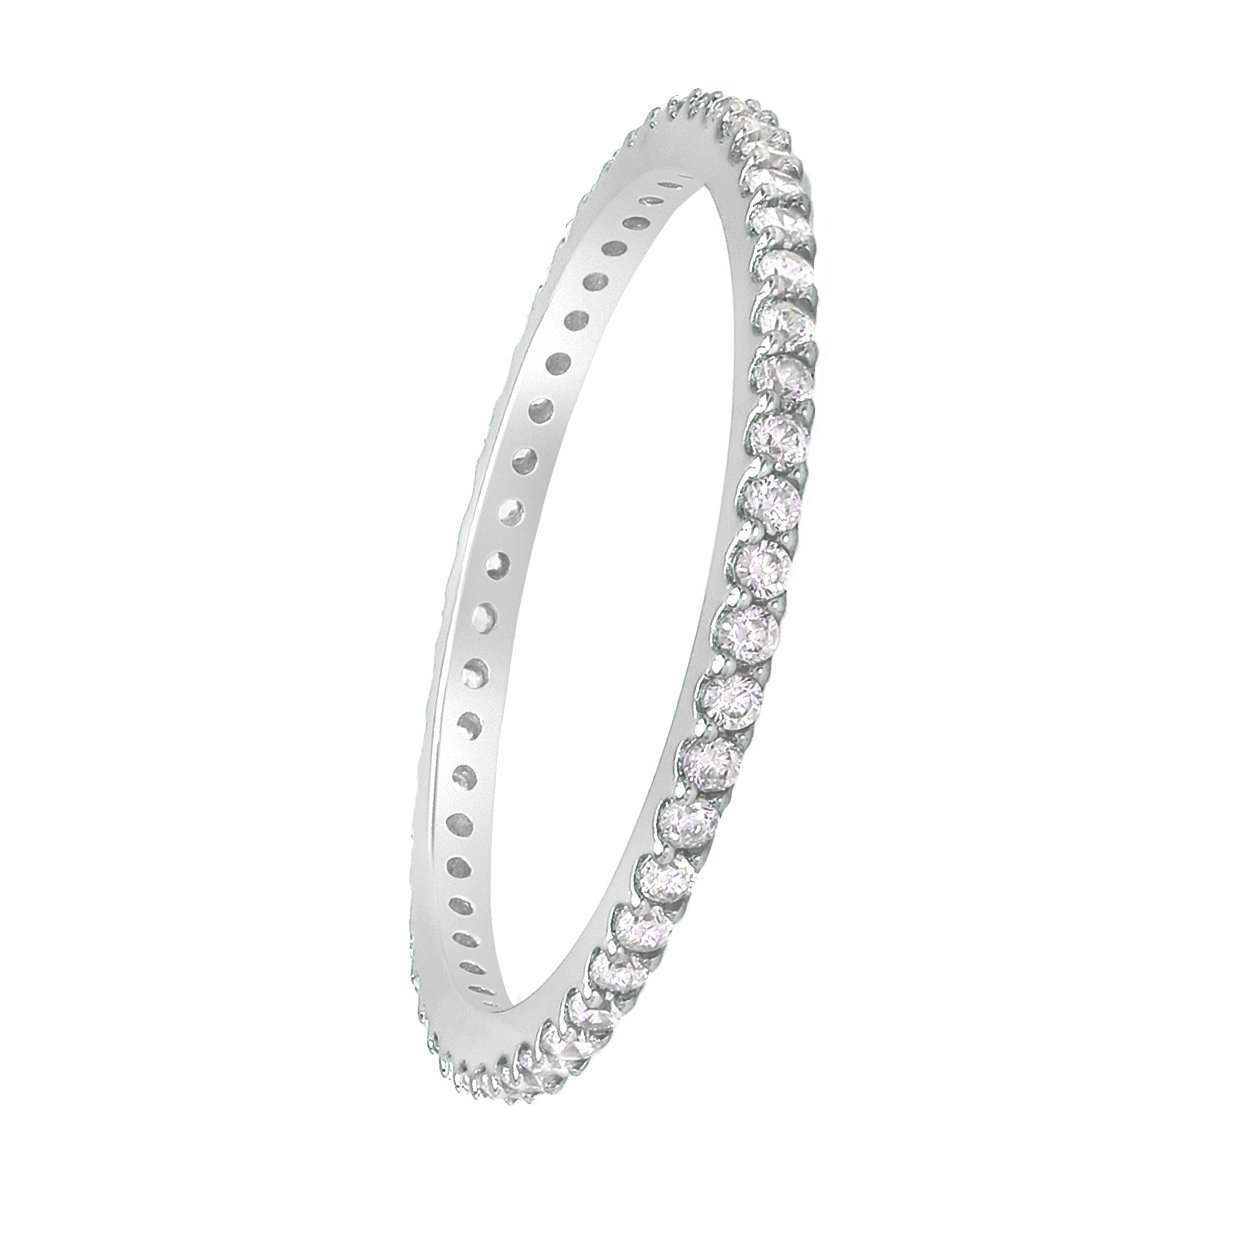 D Jewelry 925 Sterling Silver Micro Pave Eternity Cz Wedding Band Promise Ring Rhodium Plated 1.4mm Stackable (7)